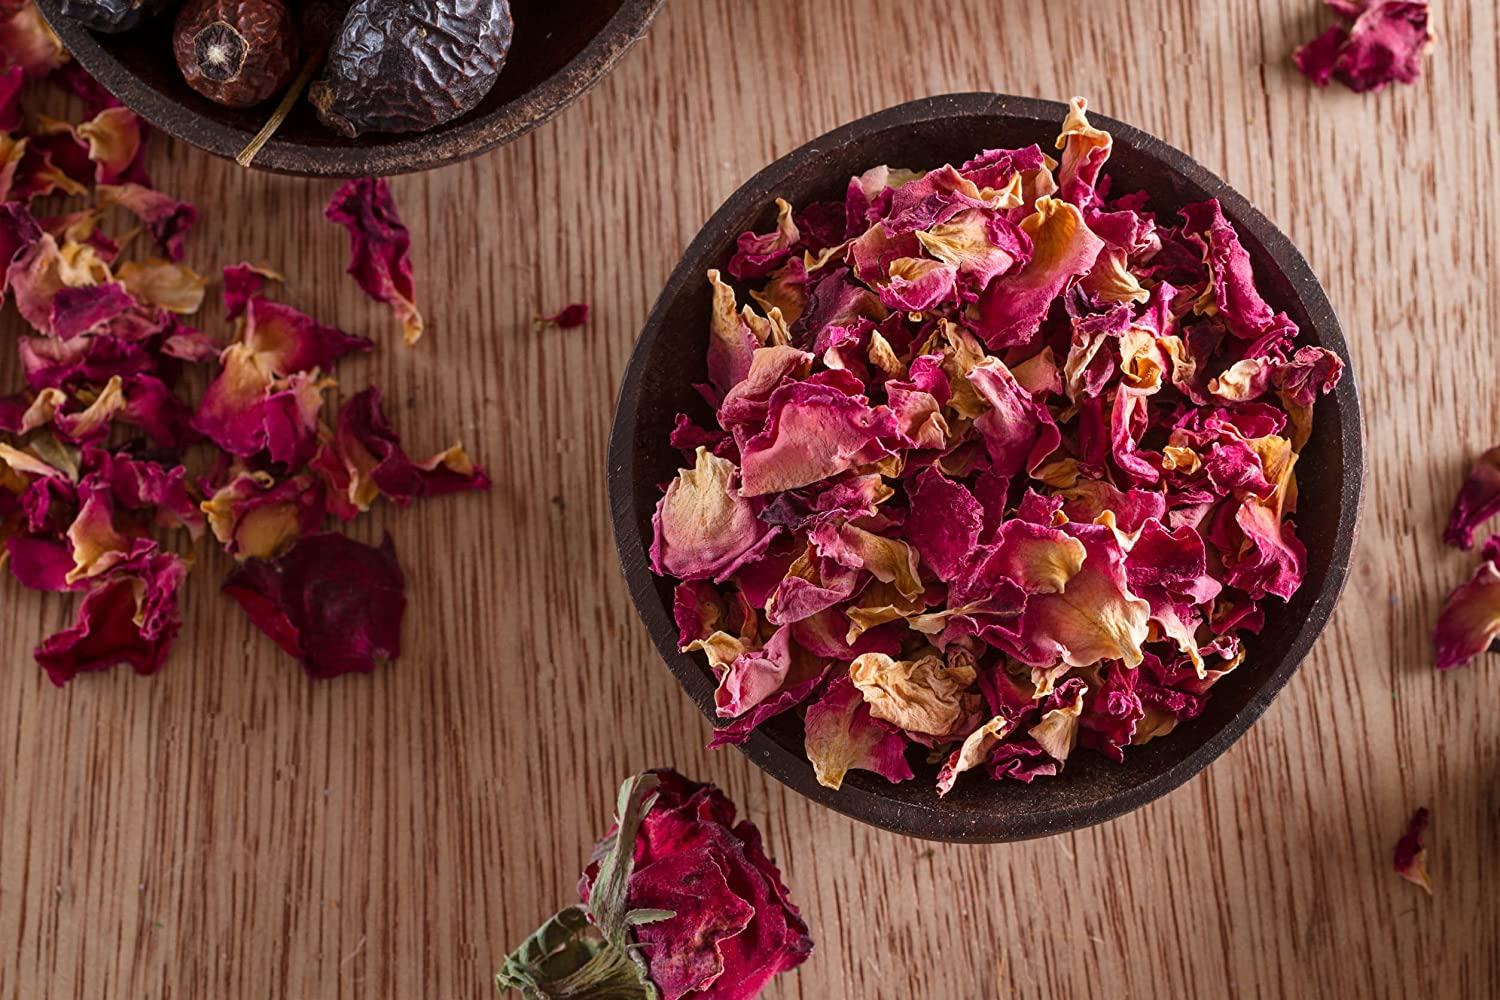 Amazon dried roses pieces 100 natural dried rose flowers amazon dried roses pieces 100 natural dried rose flowers for homemade tea blends potpourri bath salts gifts crafts wild flower 9 2 ounce dhlflorist Gallery